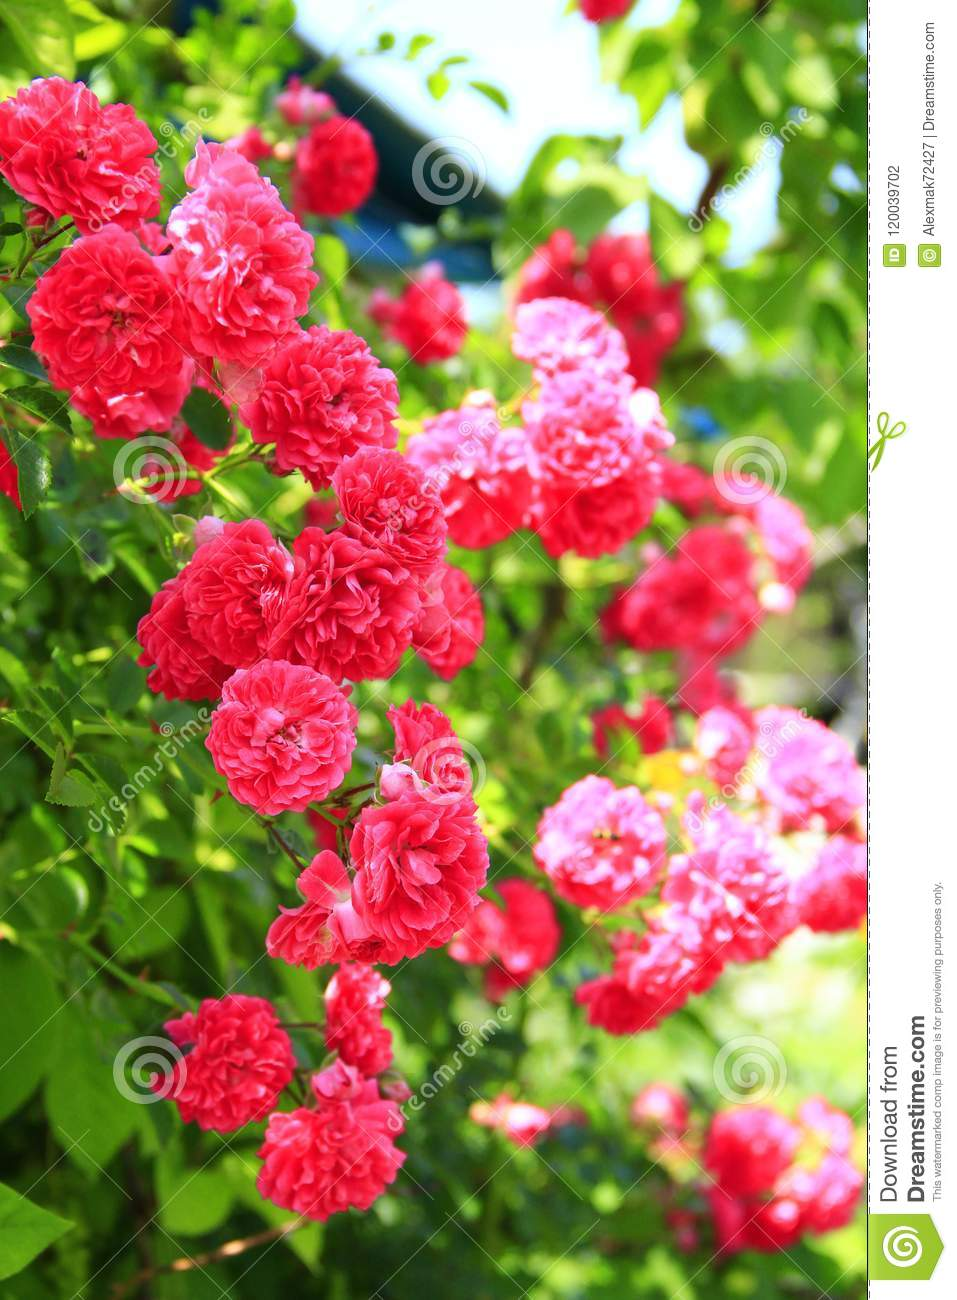 Delicate Flowers Of Climbing Red Rose Bloom In Garden Near House